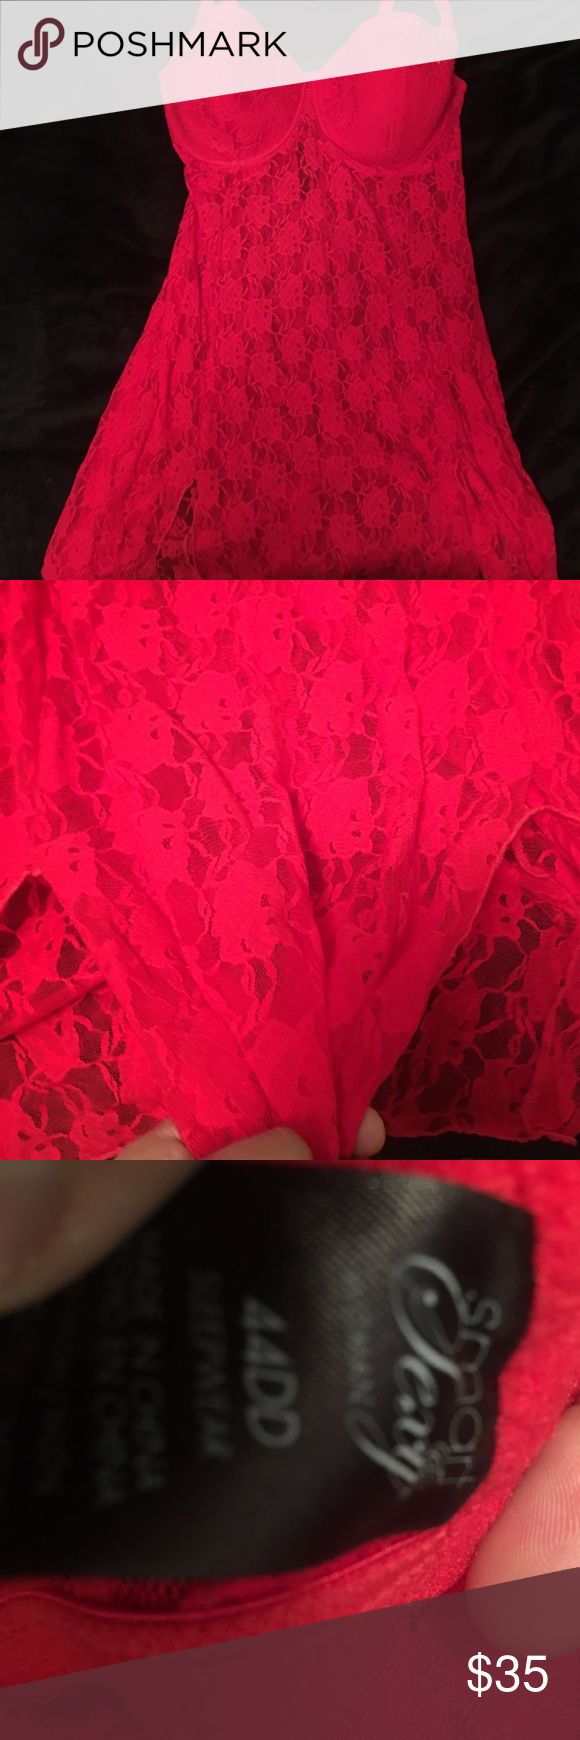 Fire red lingerie See through from under the bust and down. Adjustable band on the back, jewel design on cups. Side slits on the front. Intimates & Sleepwear Chemises & Slips